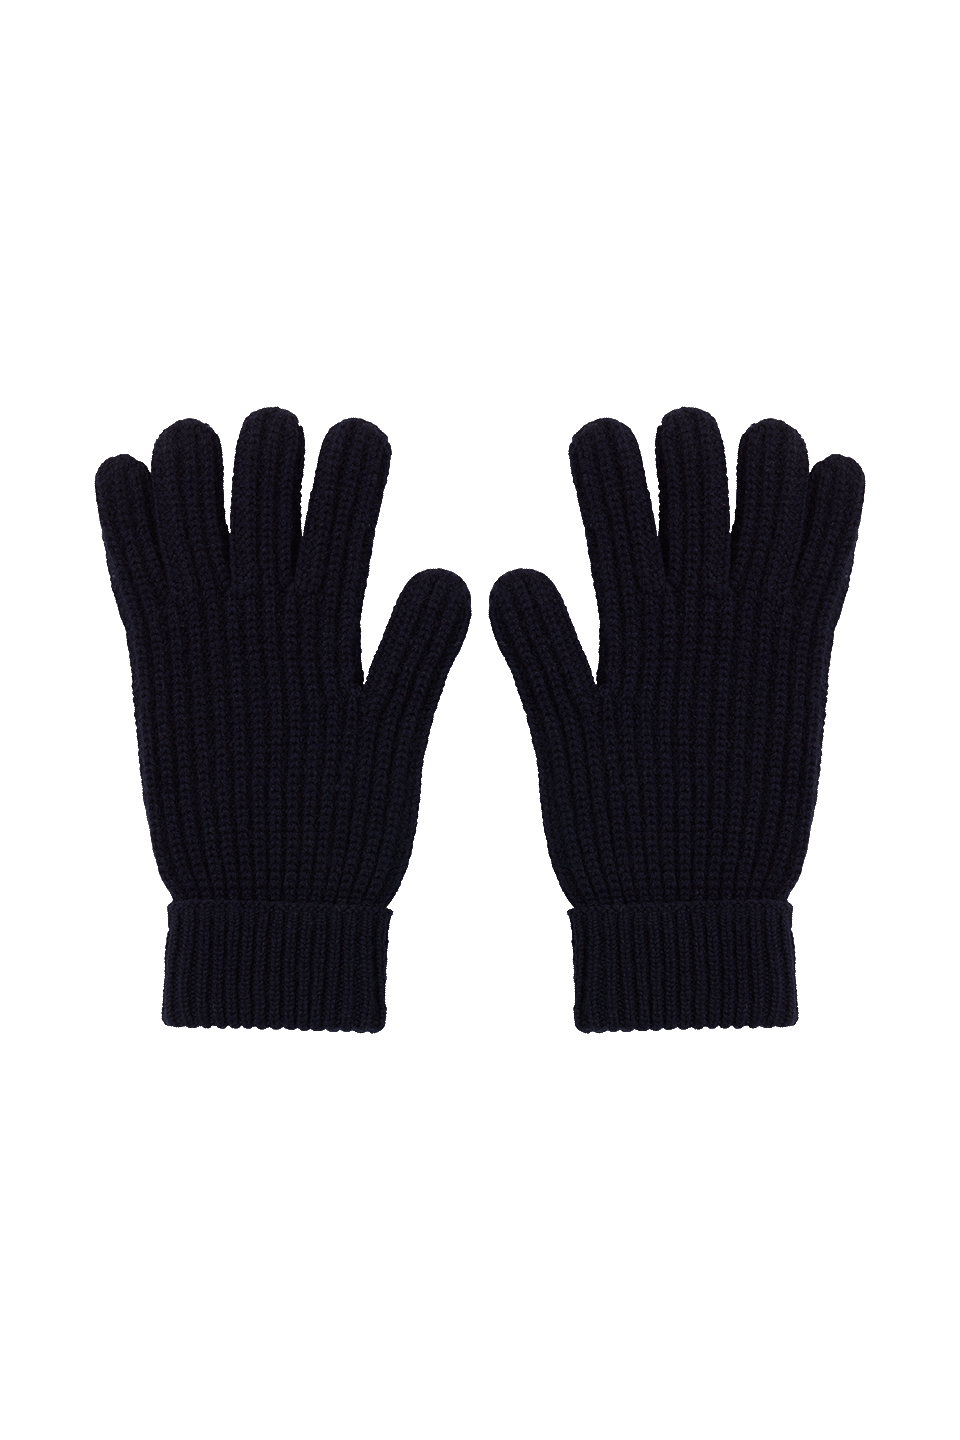 uploads gloves gloves PNG80353 3